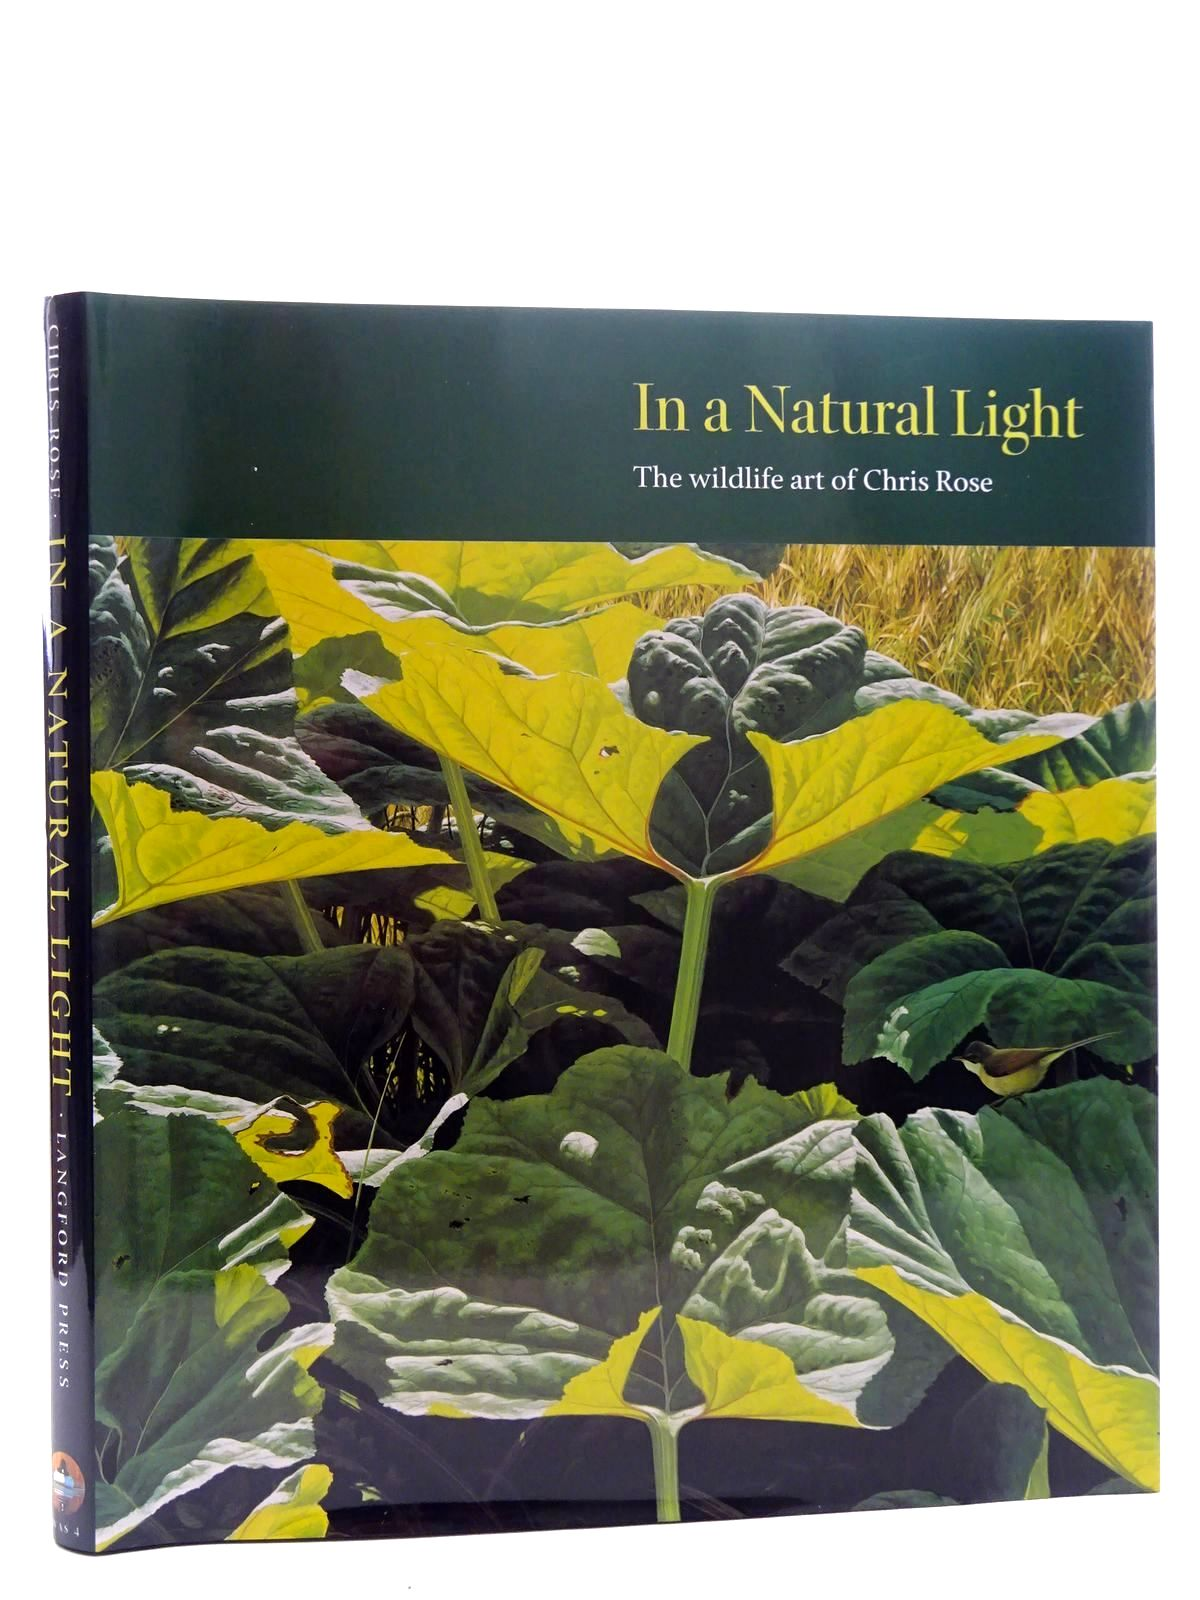 Photo of IN A NATURAL LIGHT written by Rose, Chris illustrated by Rose, Chris published by Langford Press (STOCK CODE: 1610661)  for sale by Stella & Rose's Books